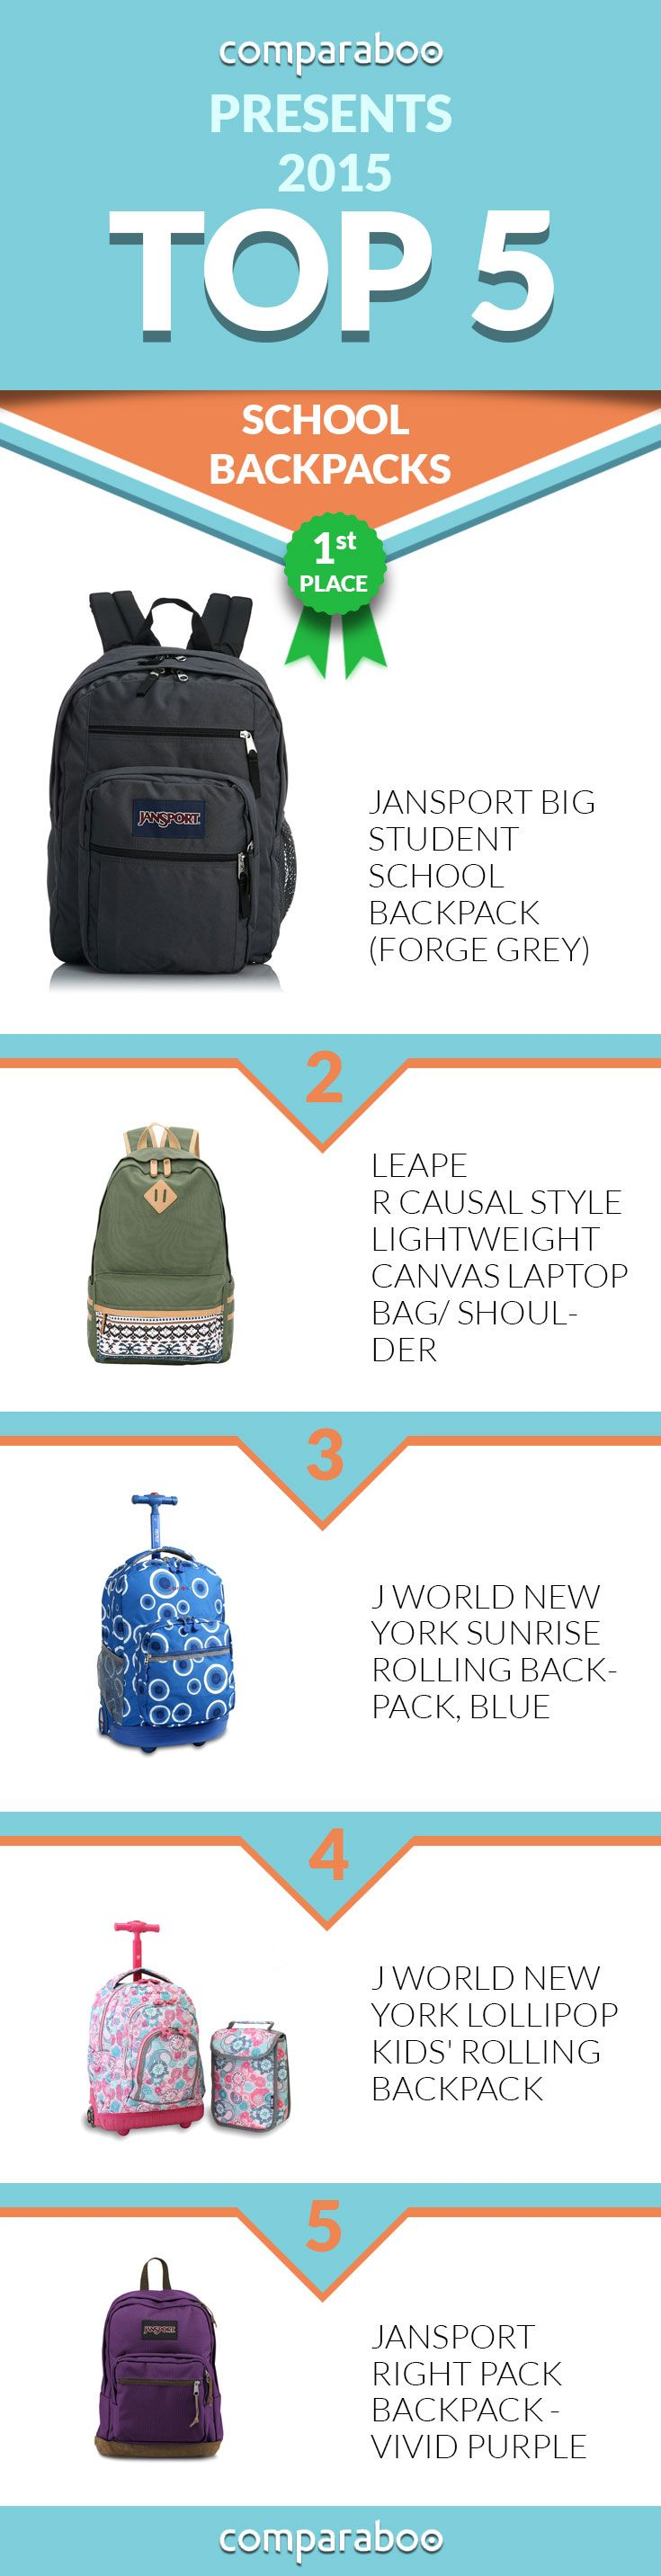 Check out the Best School Backpacks from Comparaboo. #Backtoschool